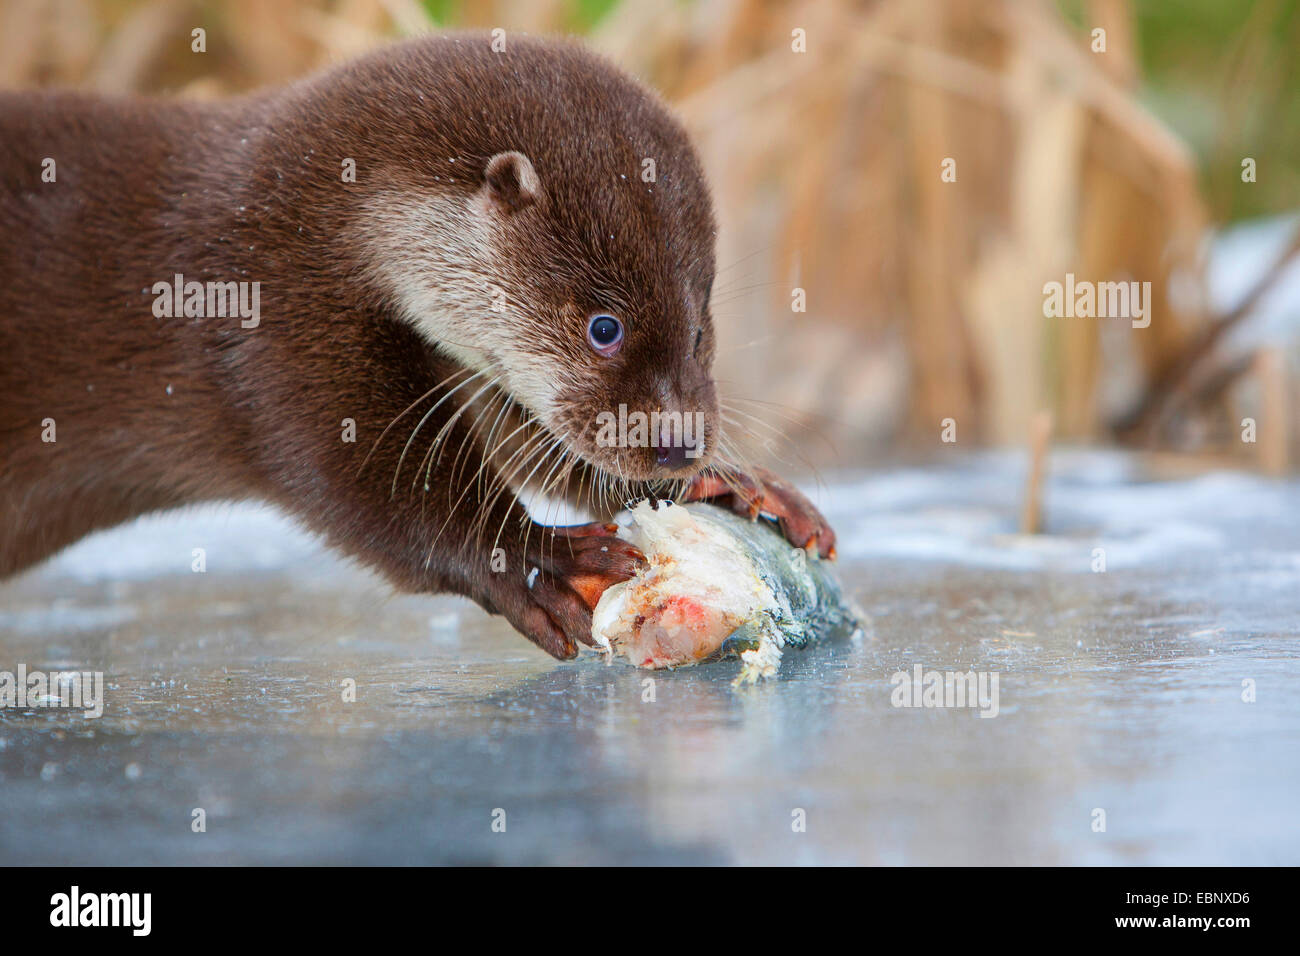 European river otter, European Otter, Eurasian Otter (Lutra lutra), female eating a catched redfin perch, Germany - Stock Image